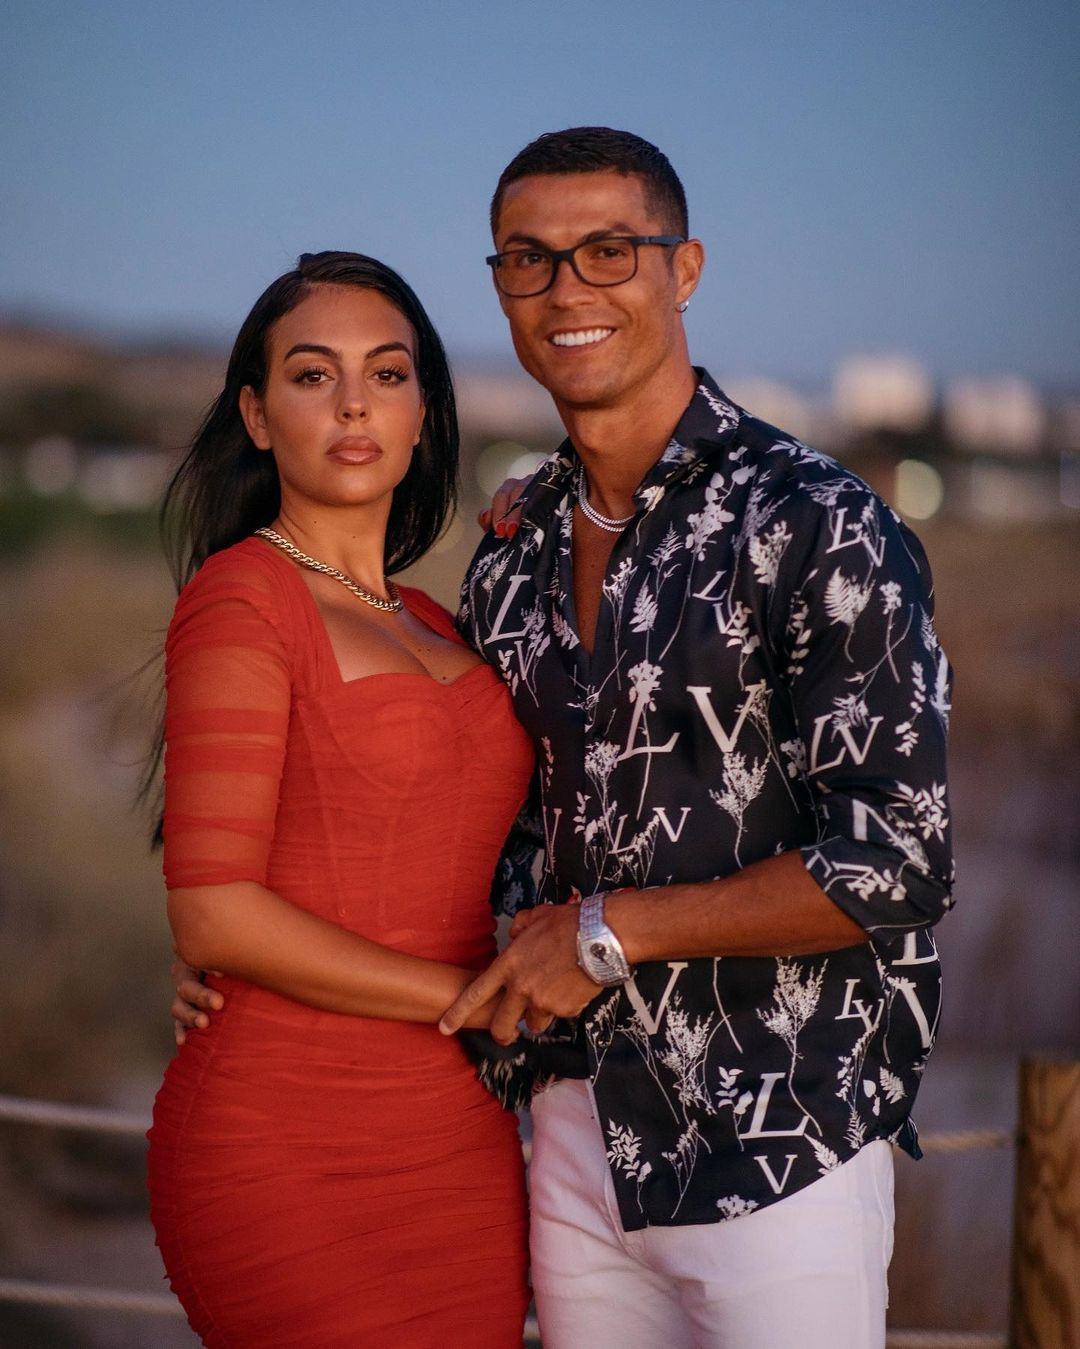 Netflix: Ronaldo's Girlfriend Georgina To Appear In Documentary About Their Relationship